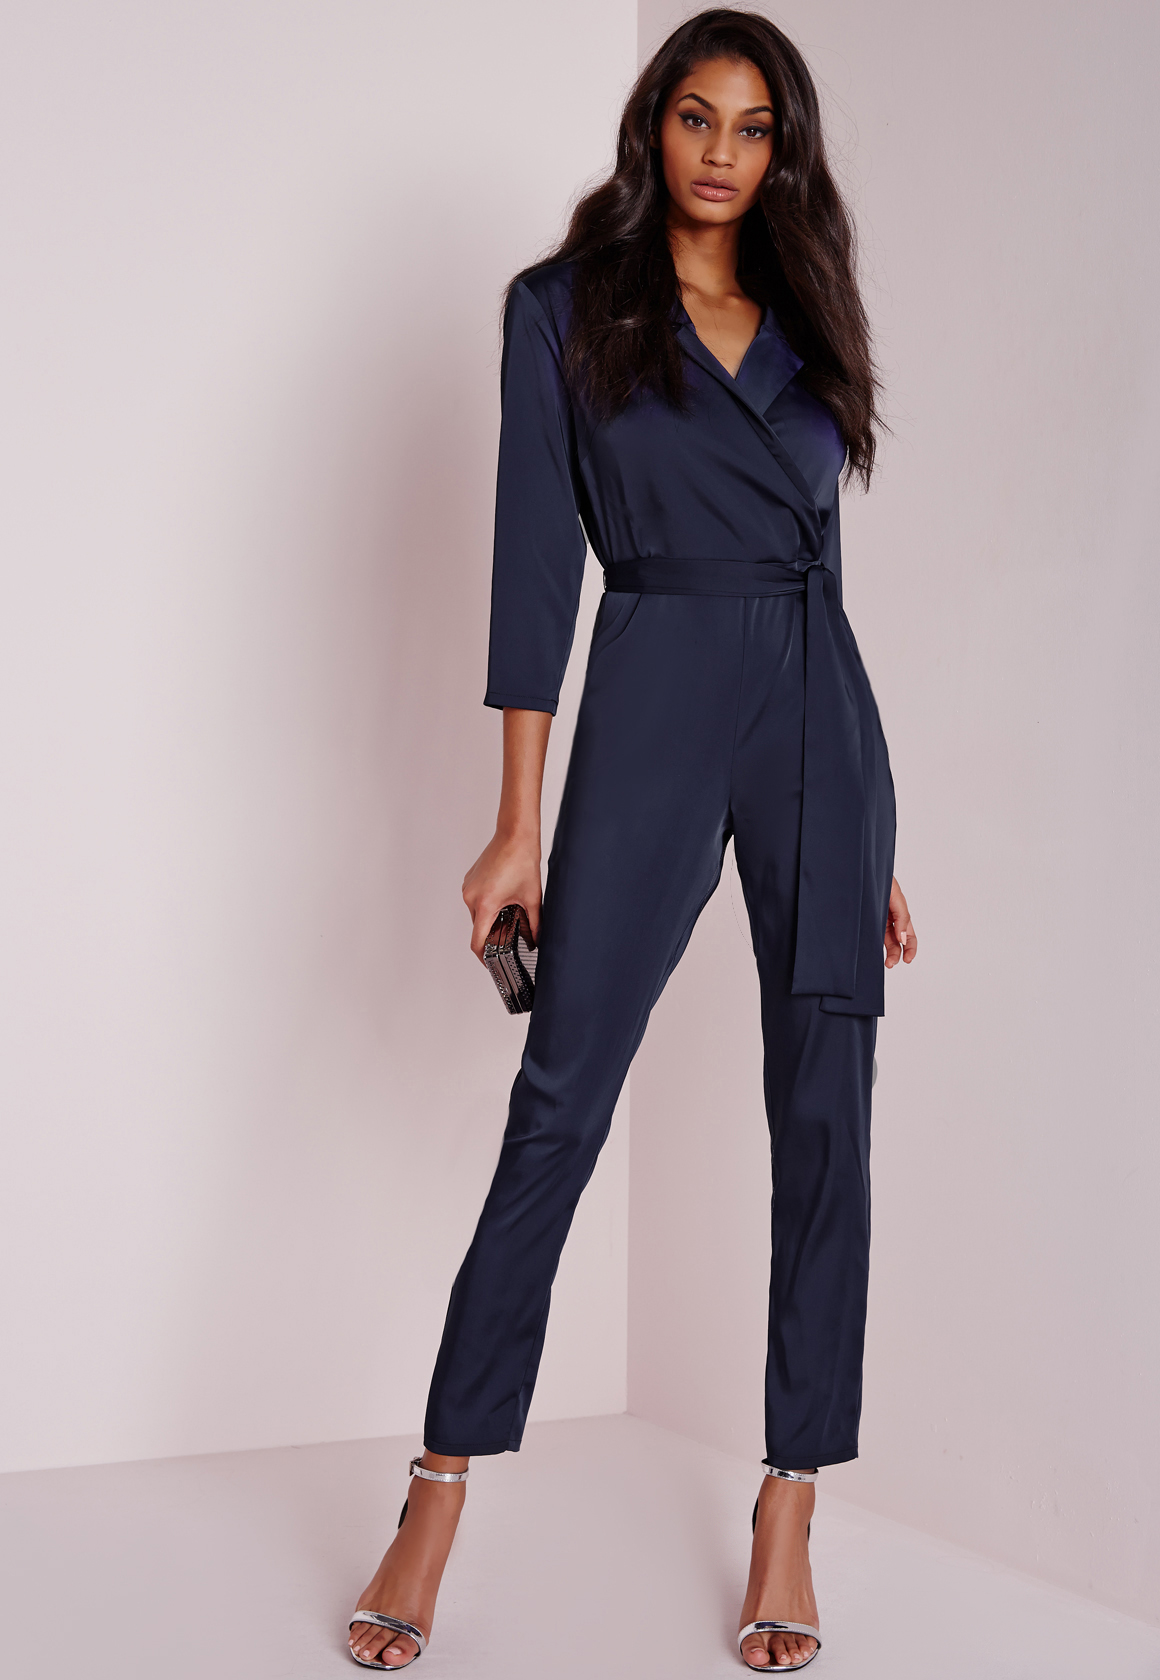 Lastest Myntra MANGO Women Navy Jumpsuit 748395  Buy Myntra MANGO Jumpsuit At